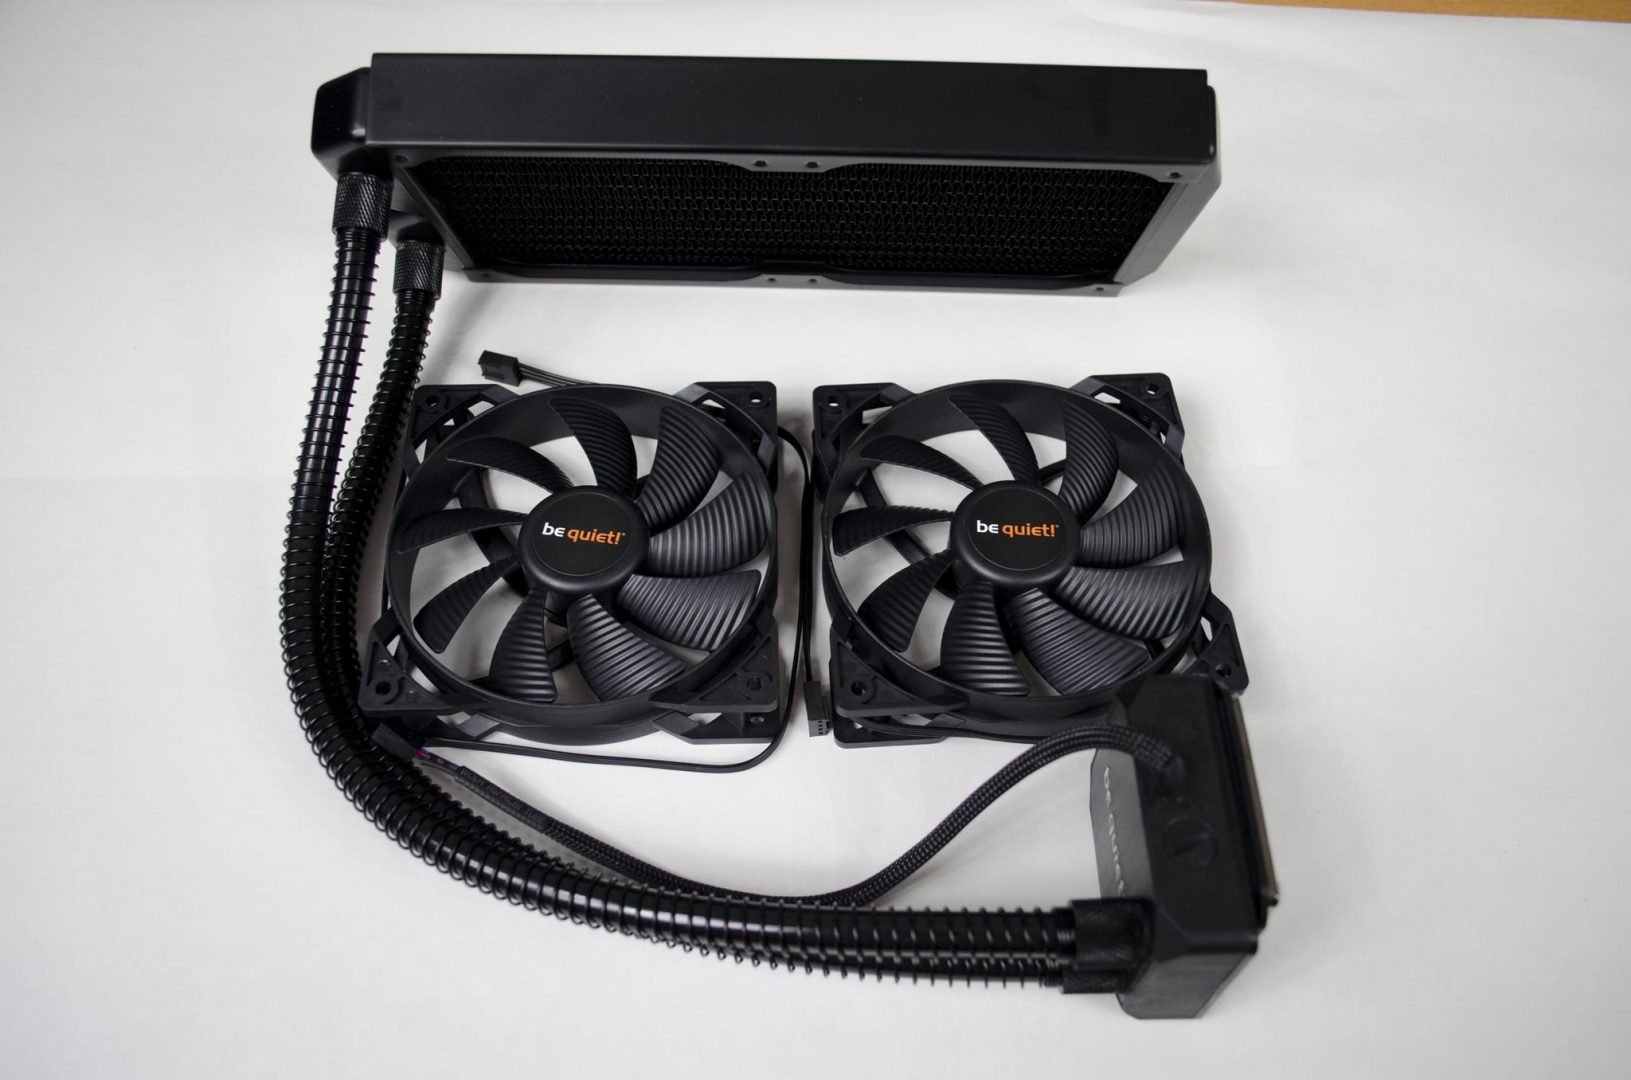 be-quiet-silent-loop-240-mm-aio-cpu-cooler-review_3